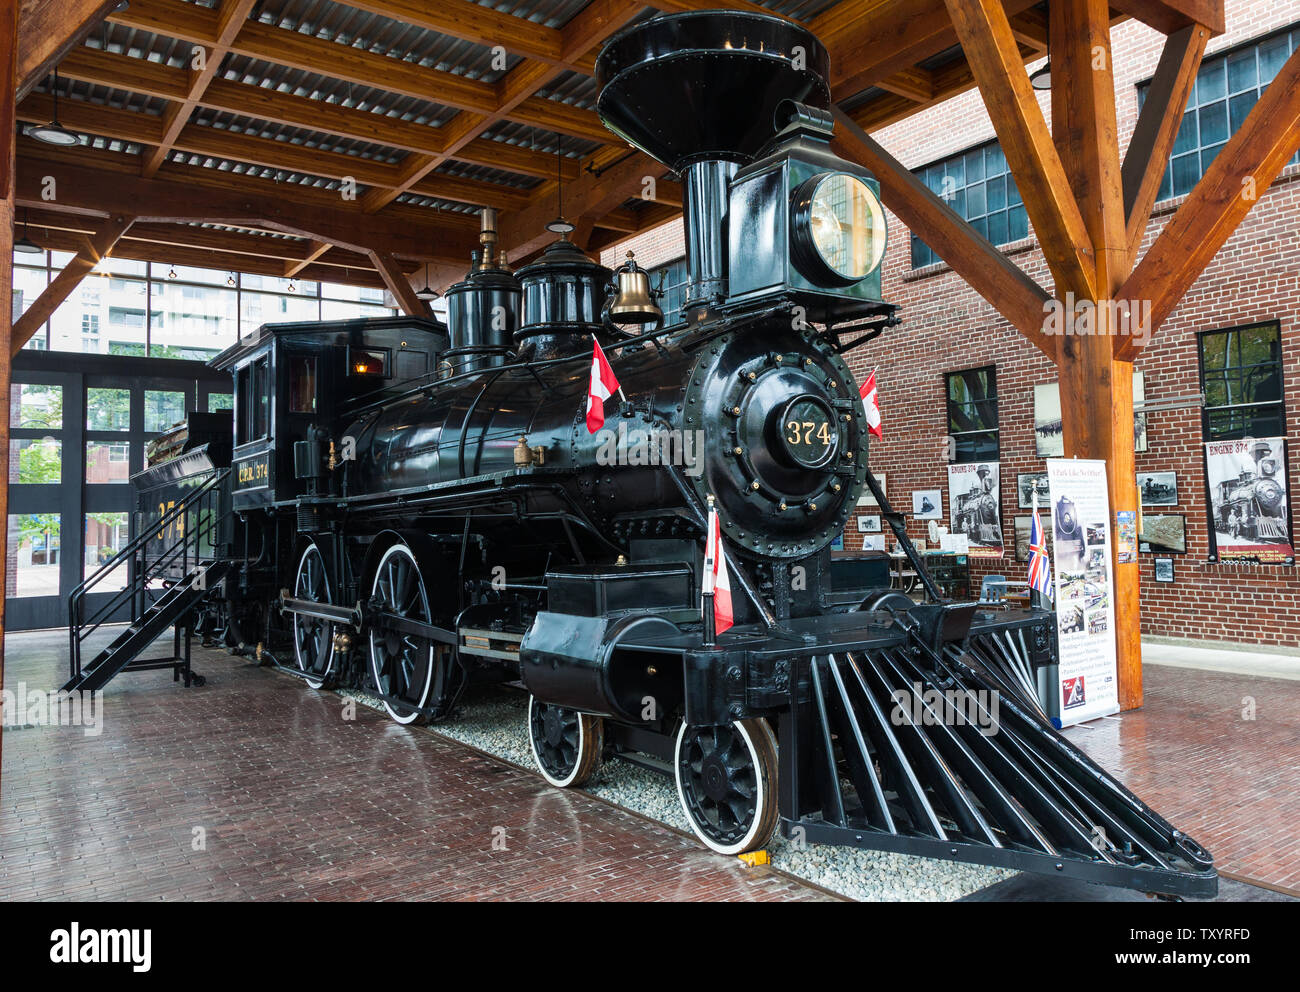 Restored locomotive No 374 of the Canadian Pacific Railway which was the first train to carry passengers from Montreal to Vancouver arriving on May 23 Stock Photo